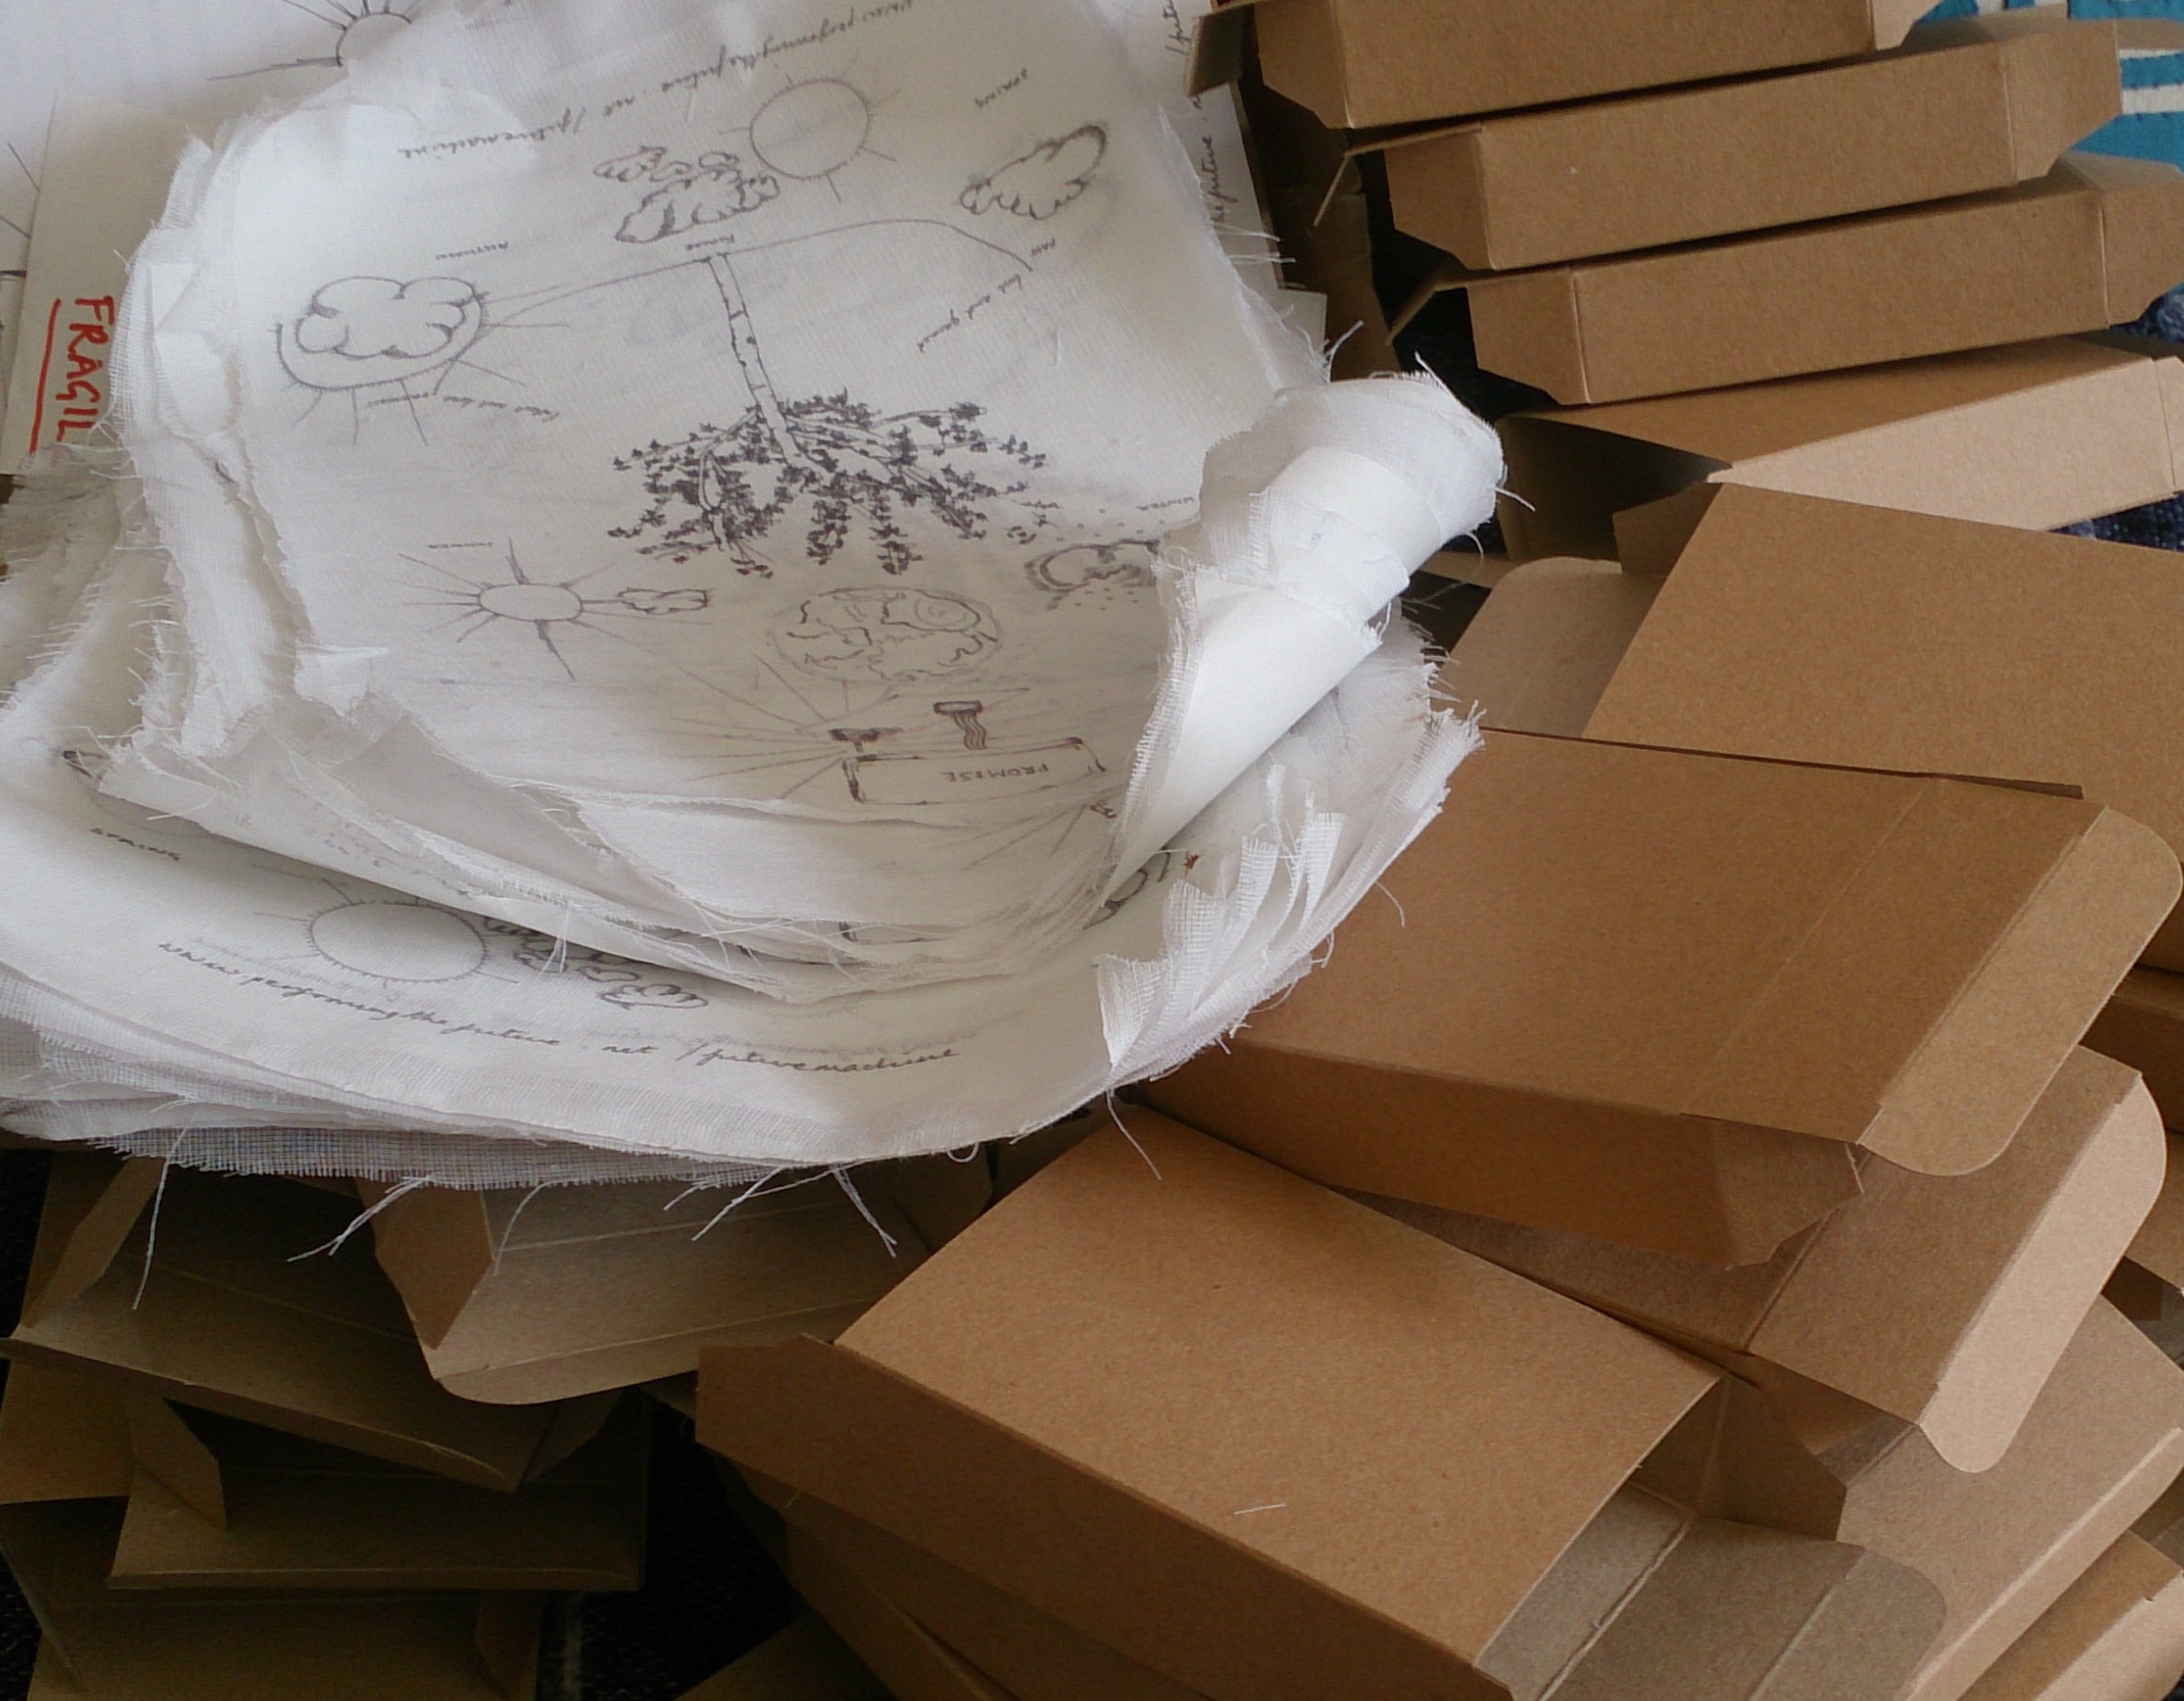 a pile of cardboard boxes and muslin with a drawing printed on them